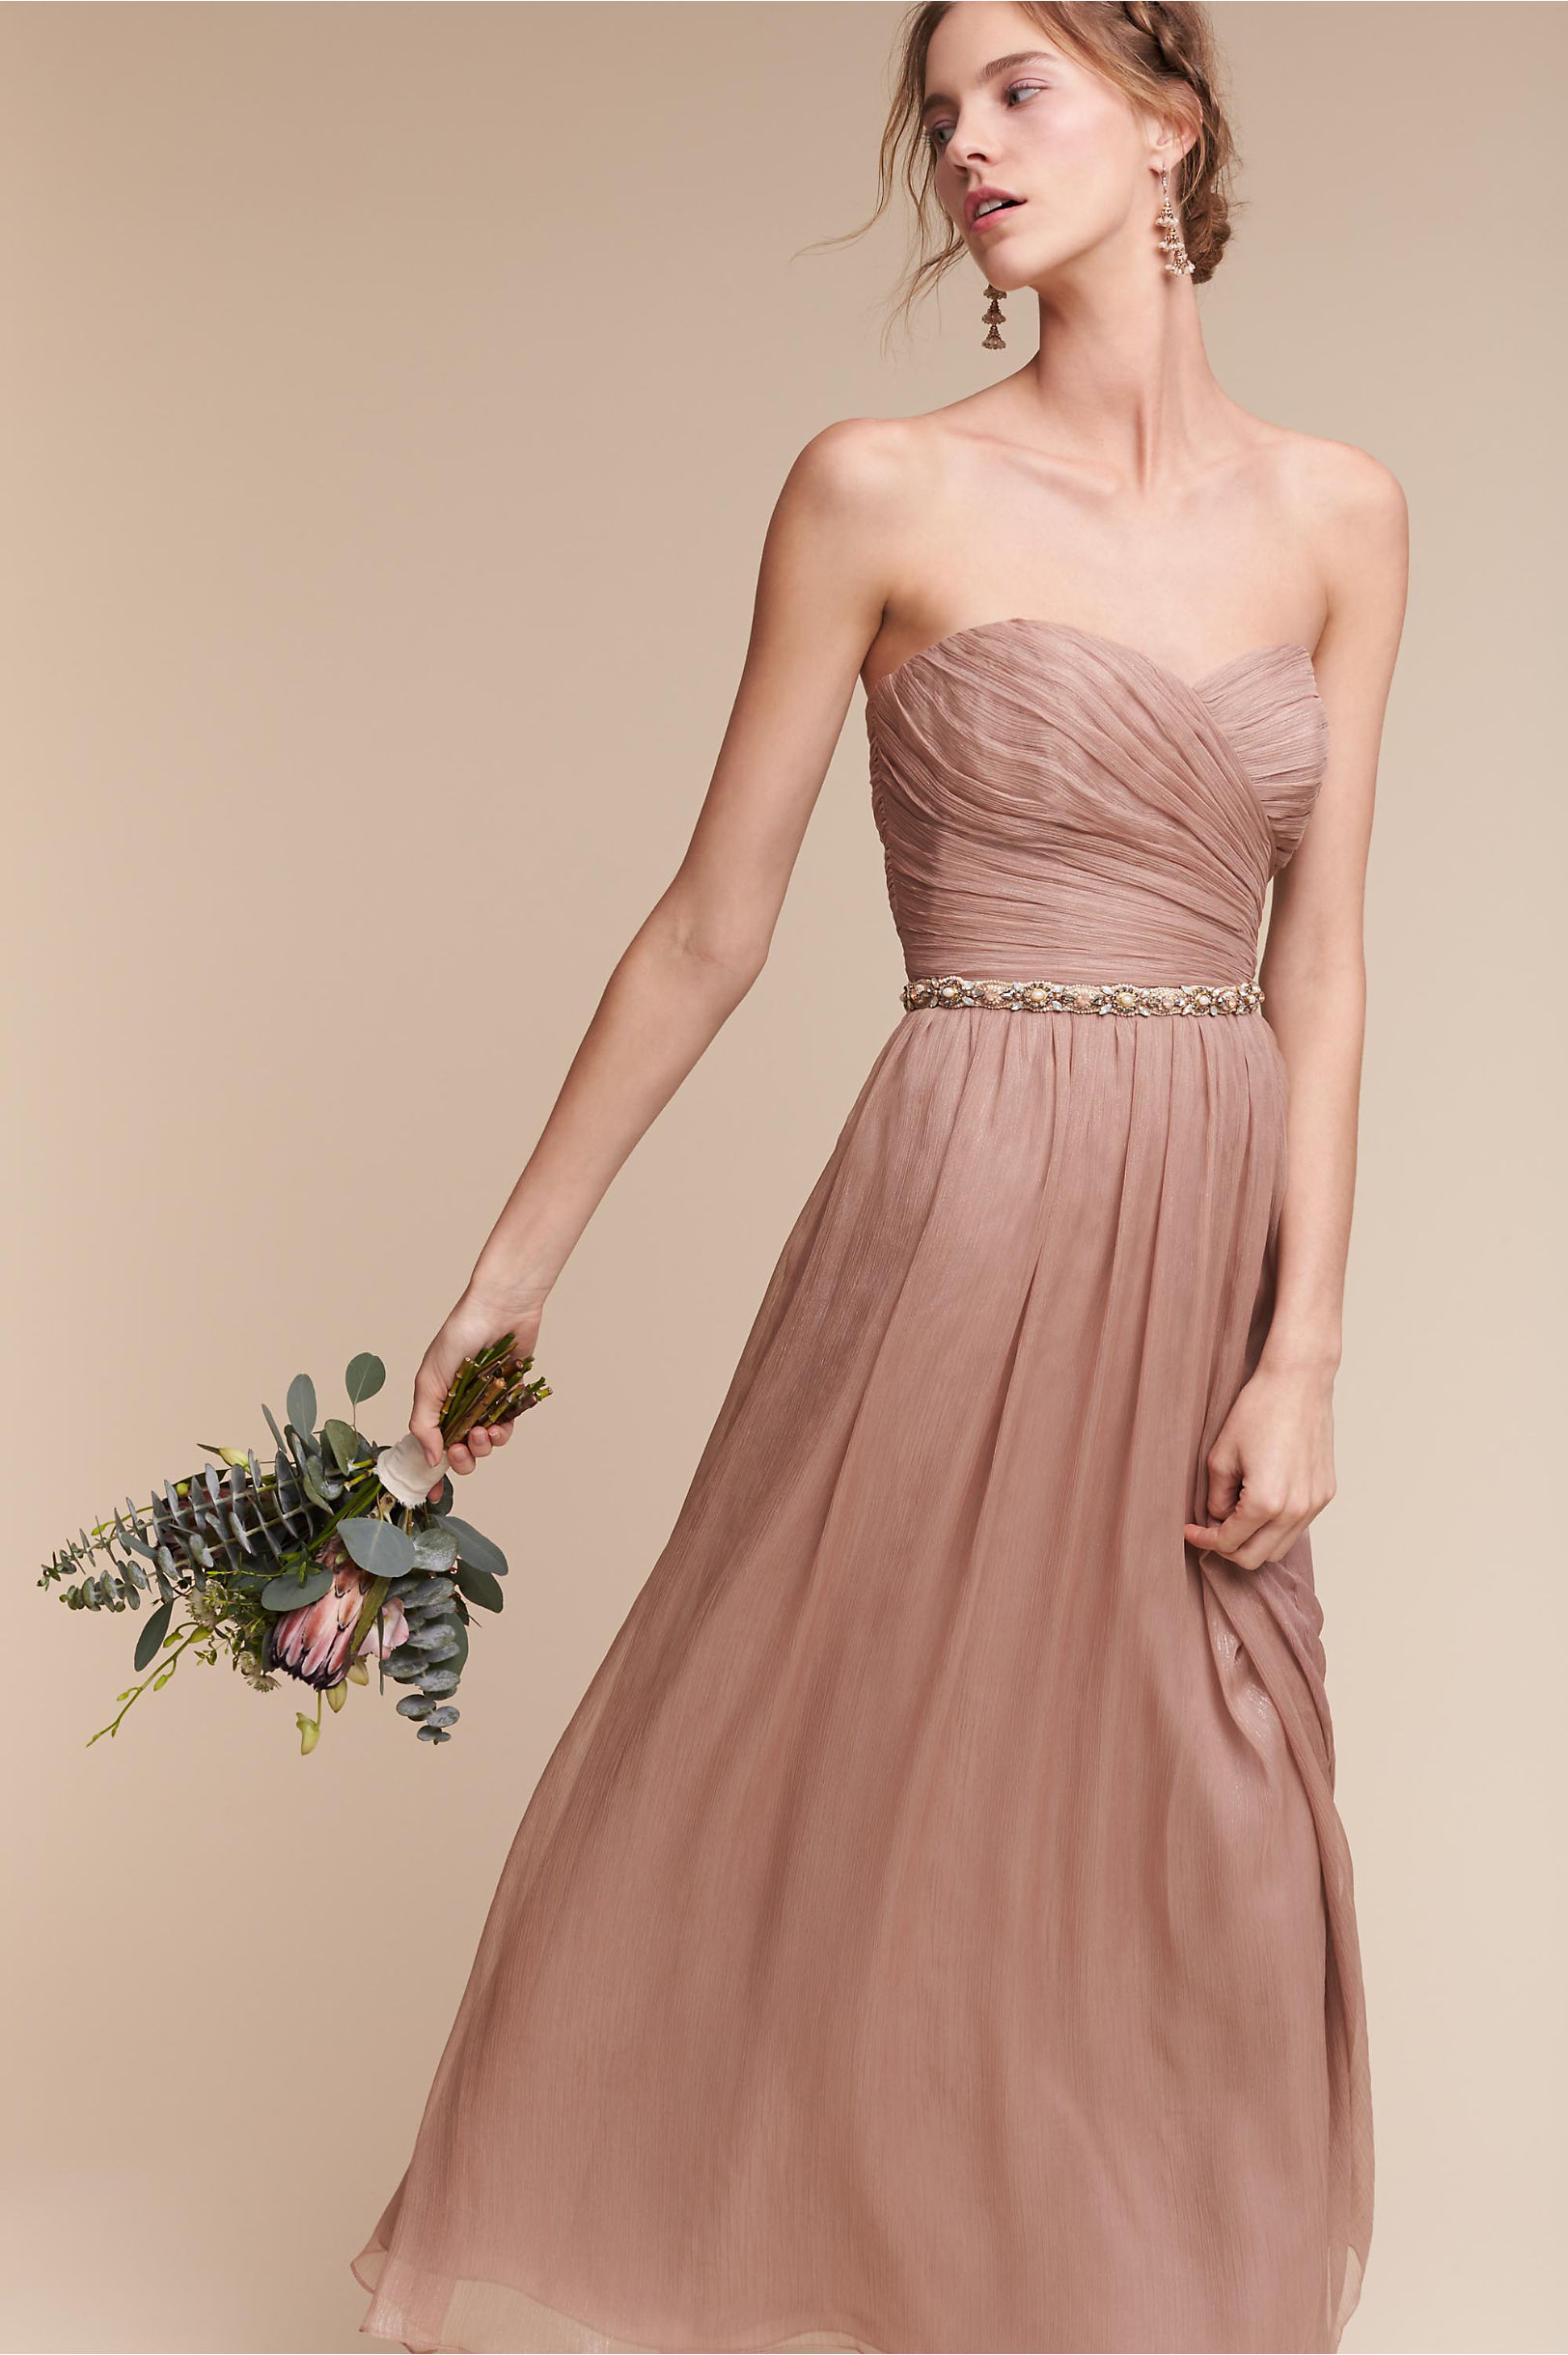 Della Dress - This dress is so flattering and romantic, and an absolute steal right now on BHLDN. Ruched bodices are always flattering, but the beauty of this strapless lies in its skirt; the midi-length allows for maximum movement while the shimmer fabric catches the light in the most beautiful way. Price: Retail $350, now just $120 (move fast on this one! limited sizes available).